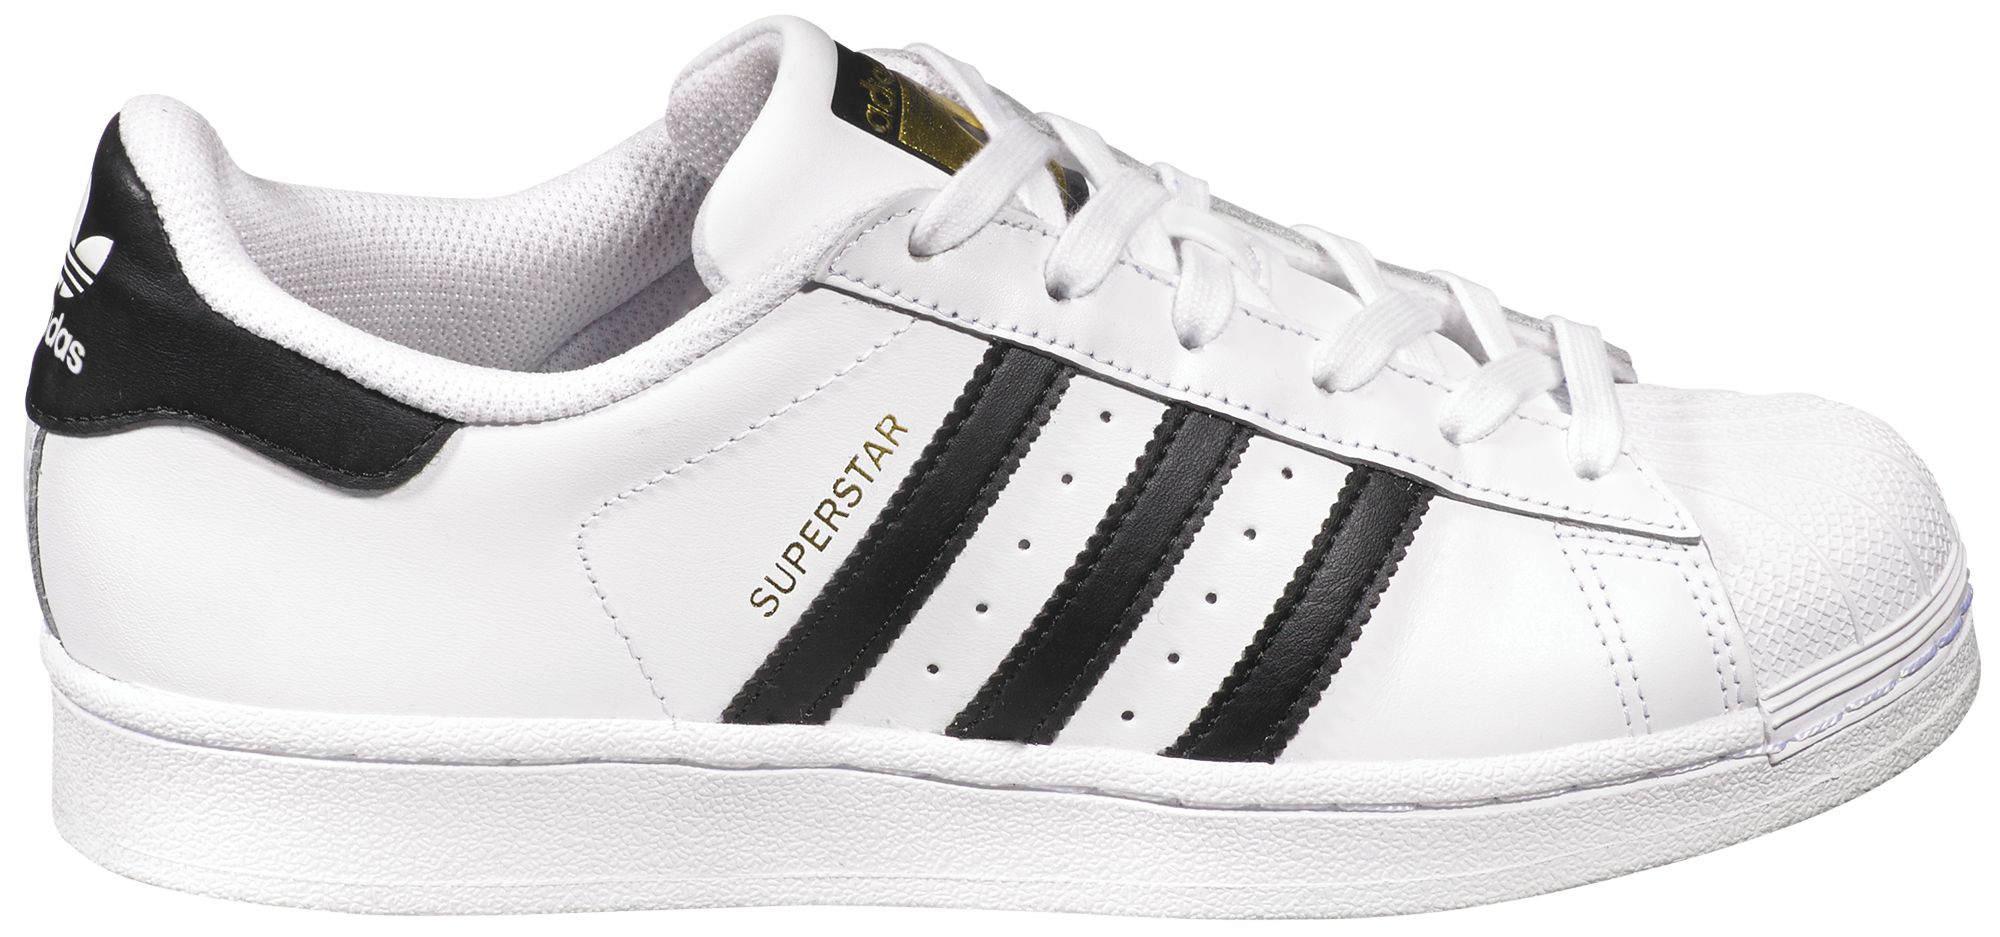 adidas superstar shoes for womens